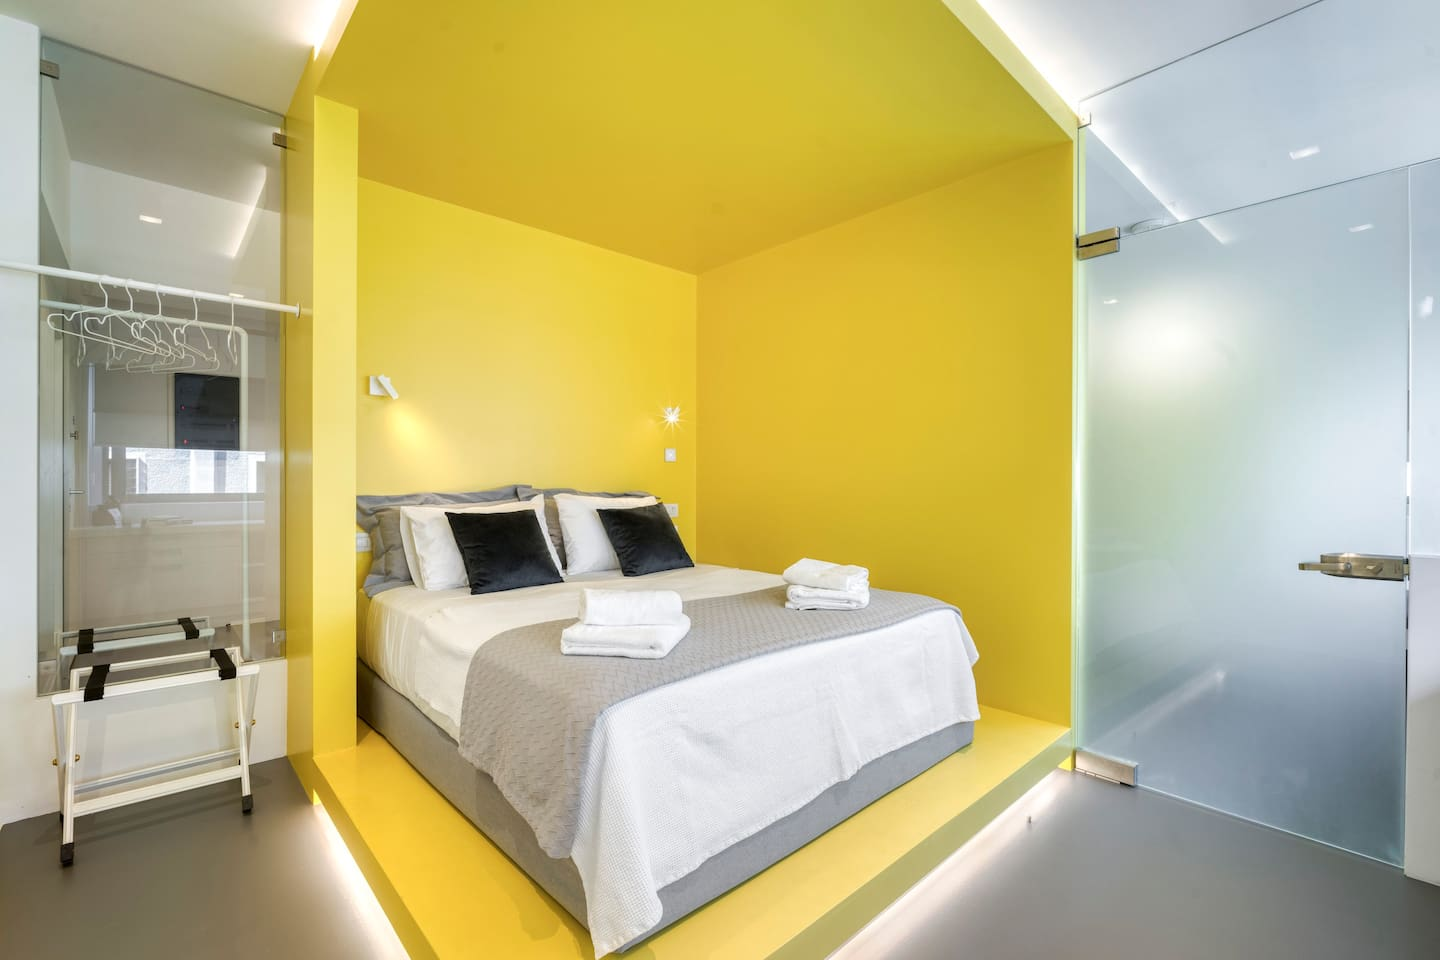 Athens Color Cube Yellow Luxury Apartment is 68.5 sqm. It is located 250m from Monastiraki Square. Aiolou Street is the epicenter of the Commercial Triangle of Athens, one of the most historic neighborhoods of Athens.